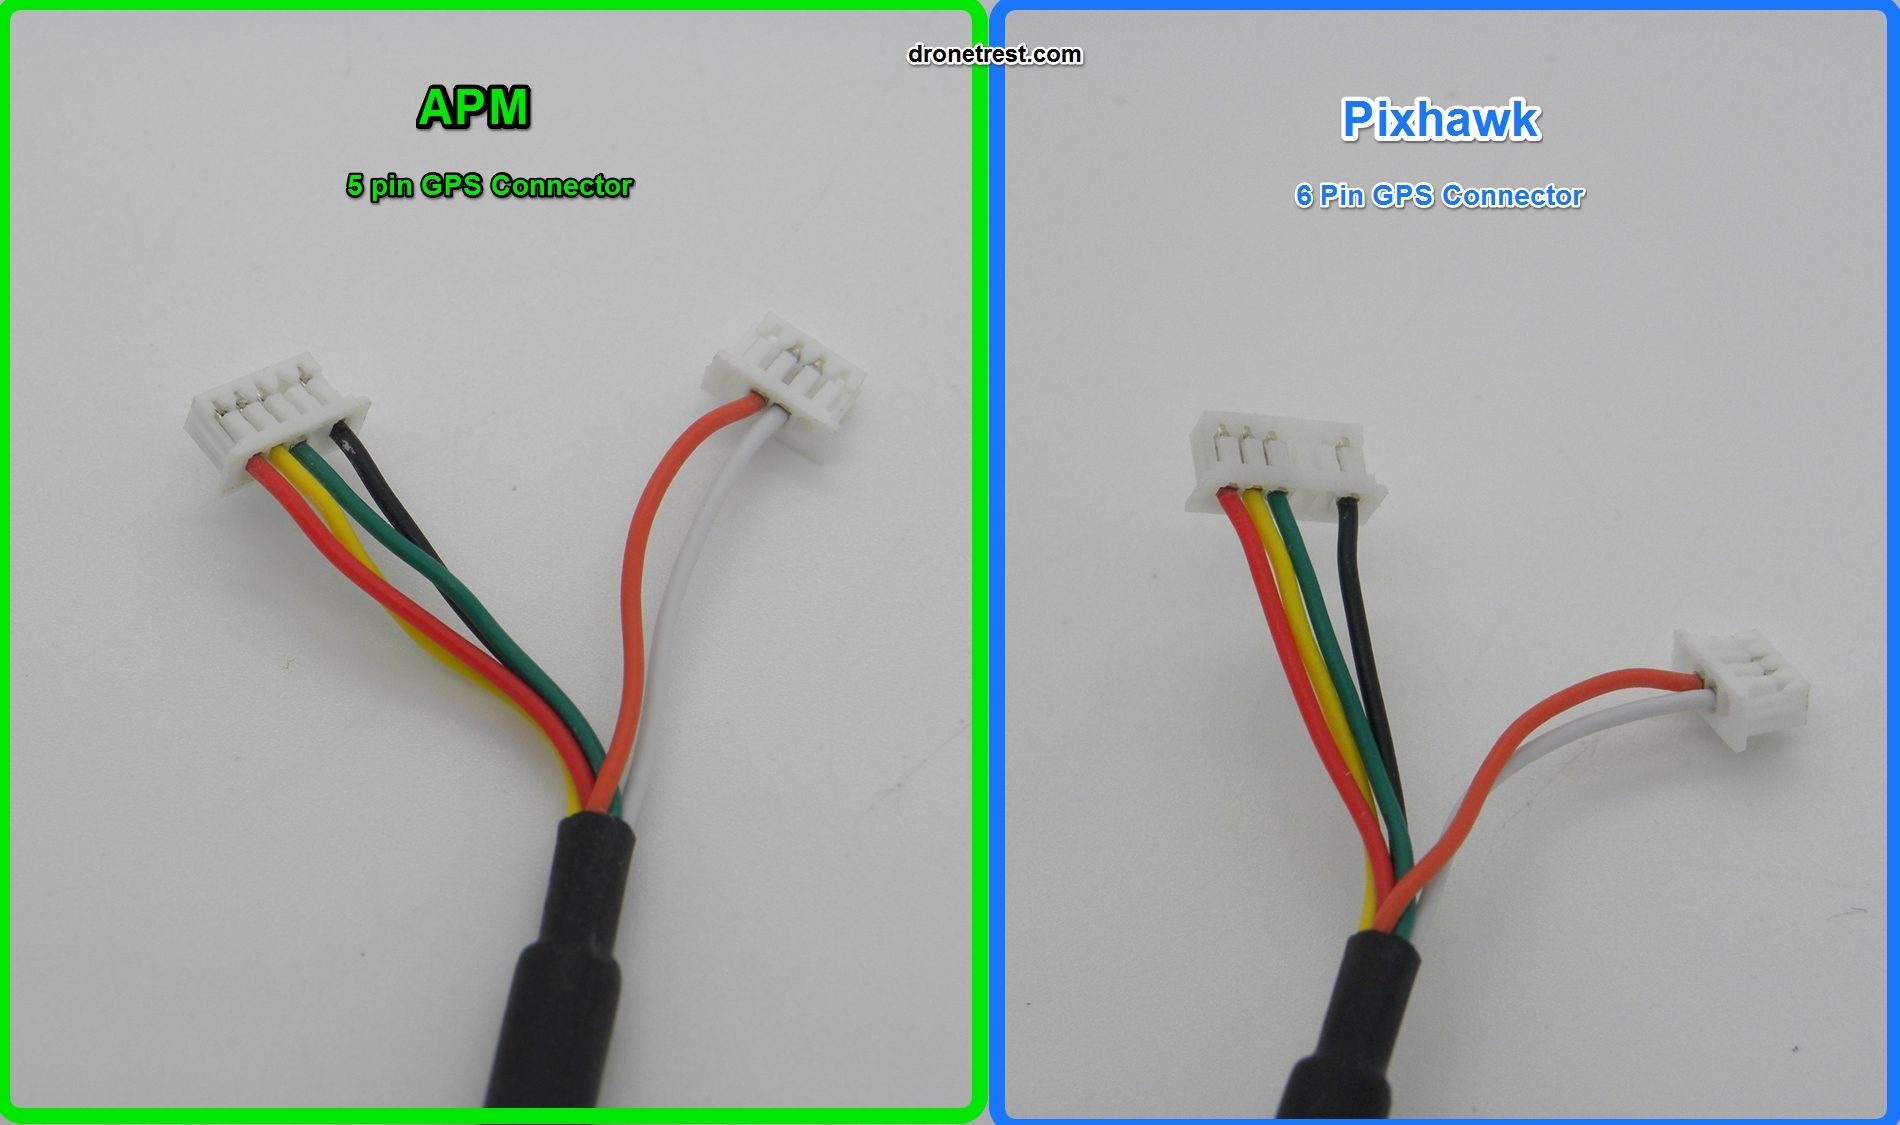 Swapping NEO-7N/NEO-M8N GPS Molex/JST-SH connectors for Pixhawk/APM